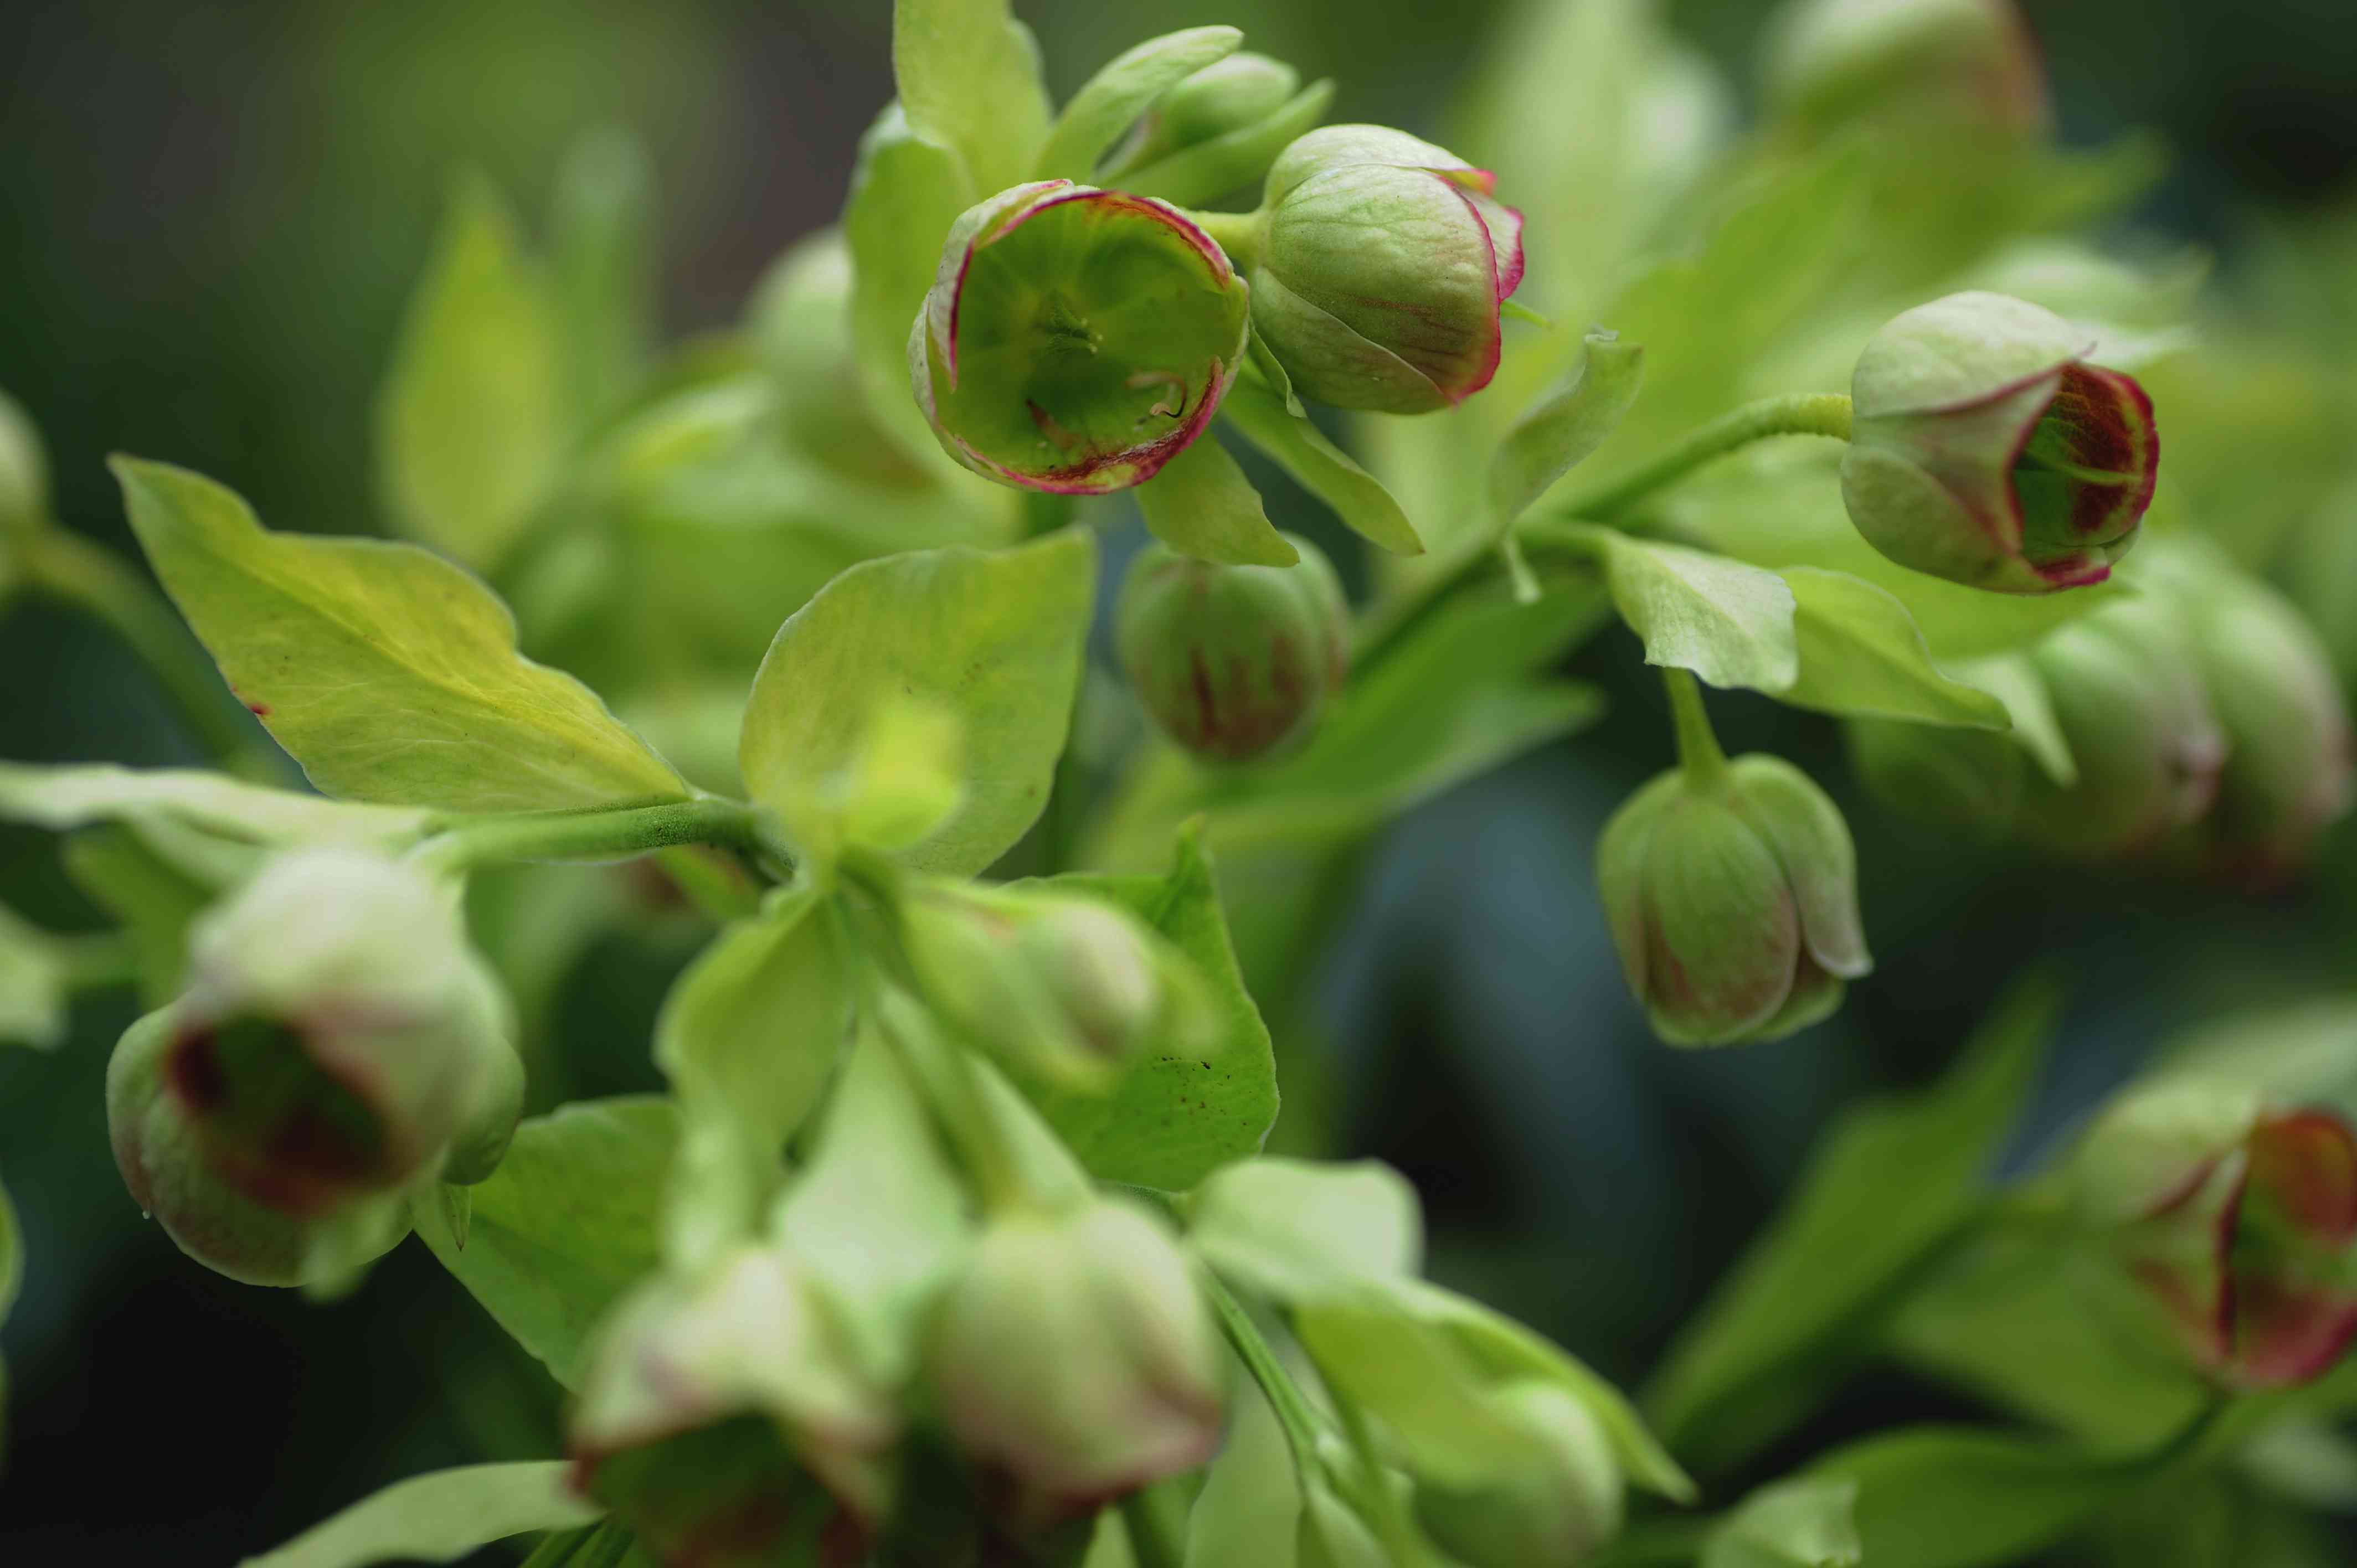 Stinking hellebore plant with light green cupped flowers clustered together between leaves closeup